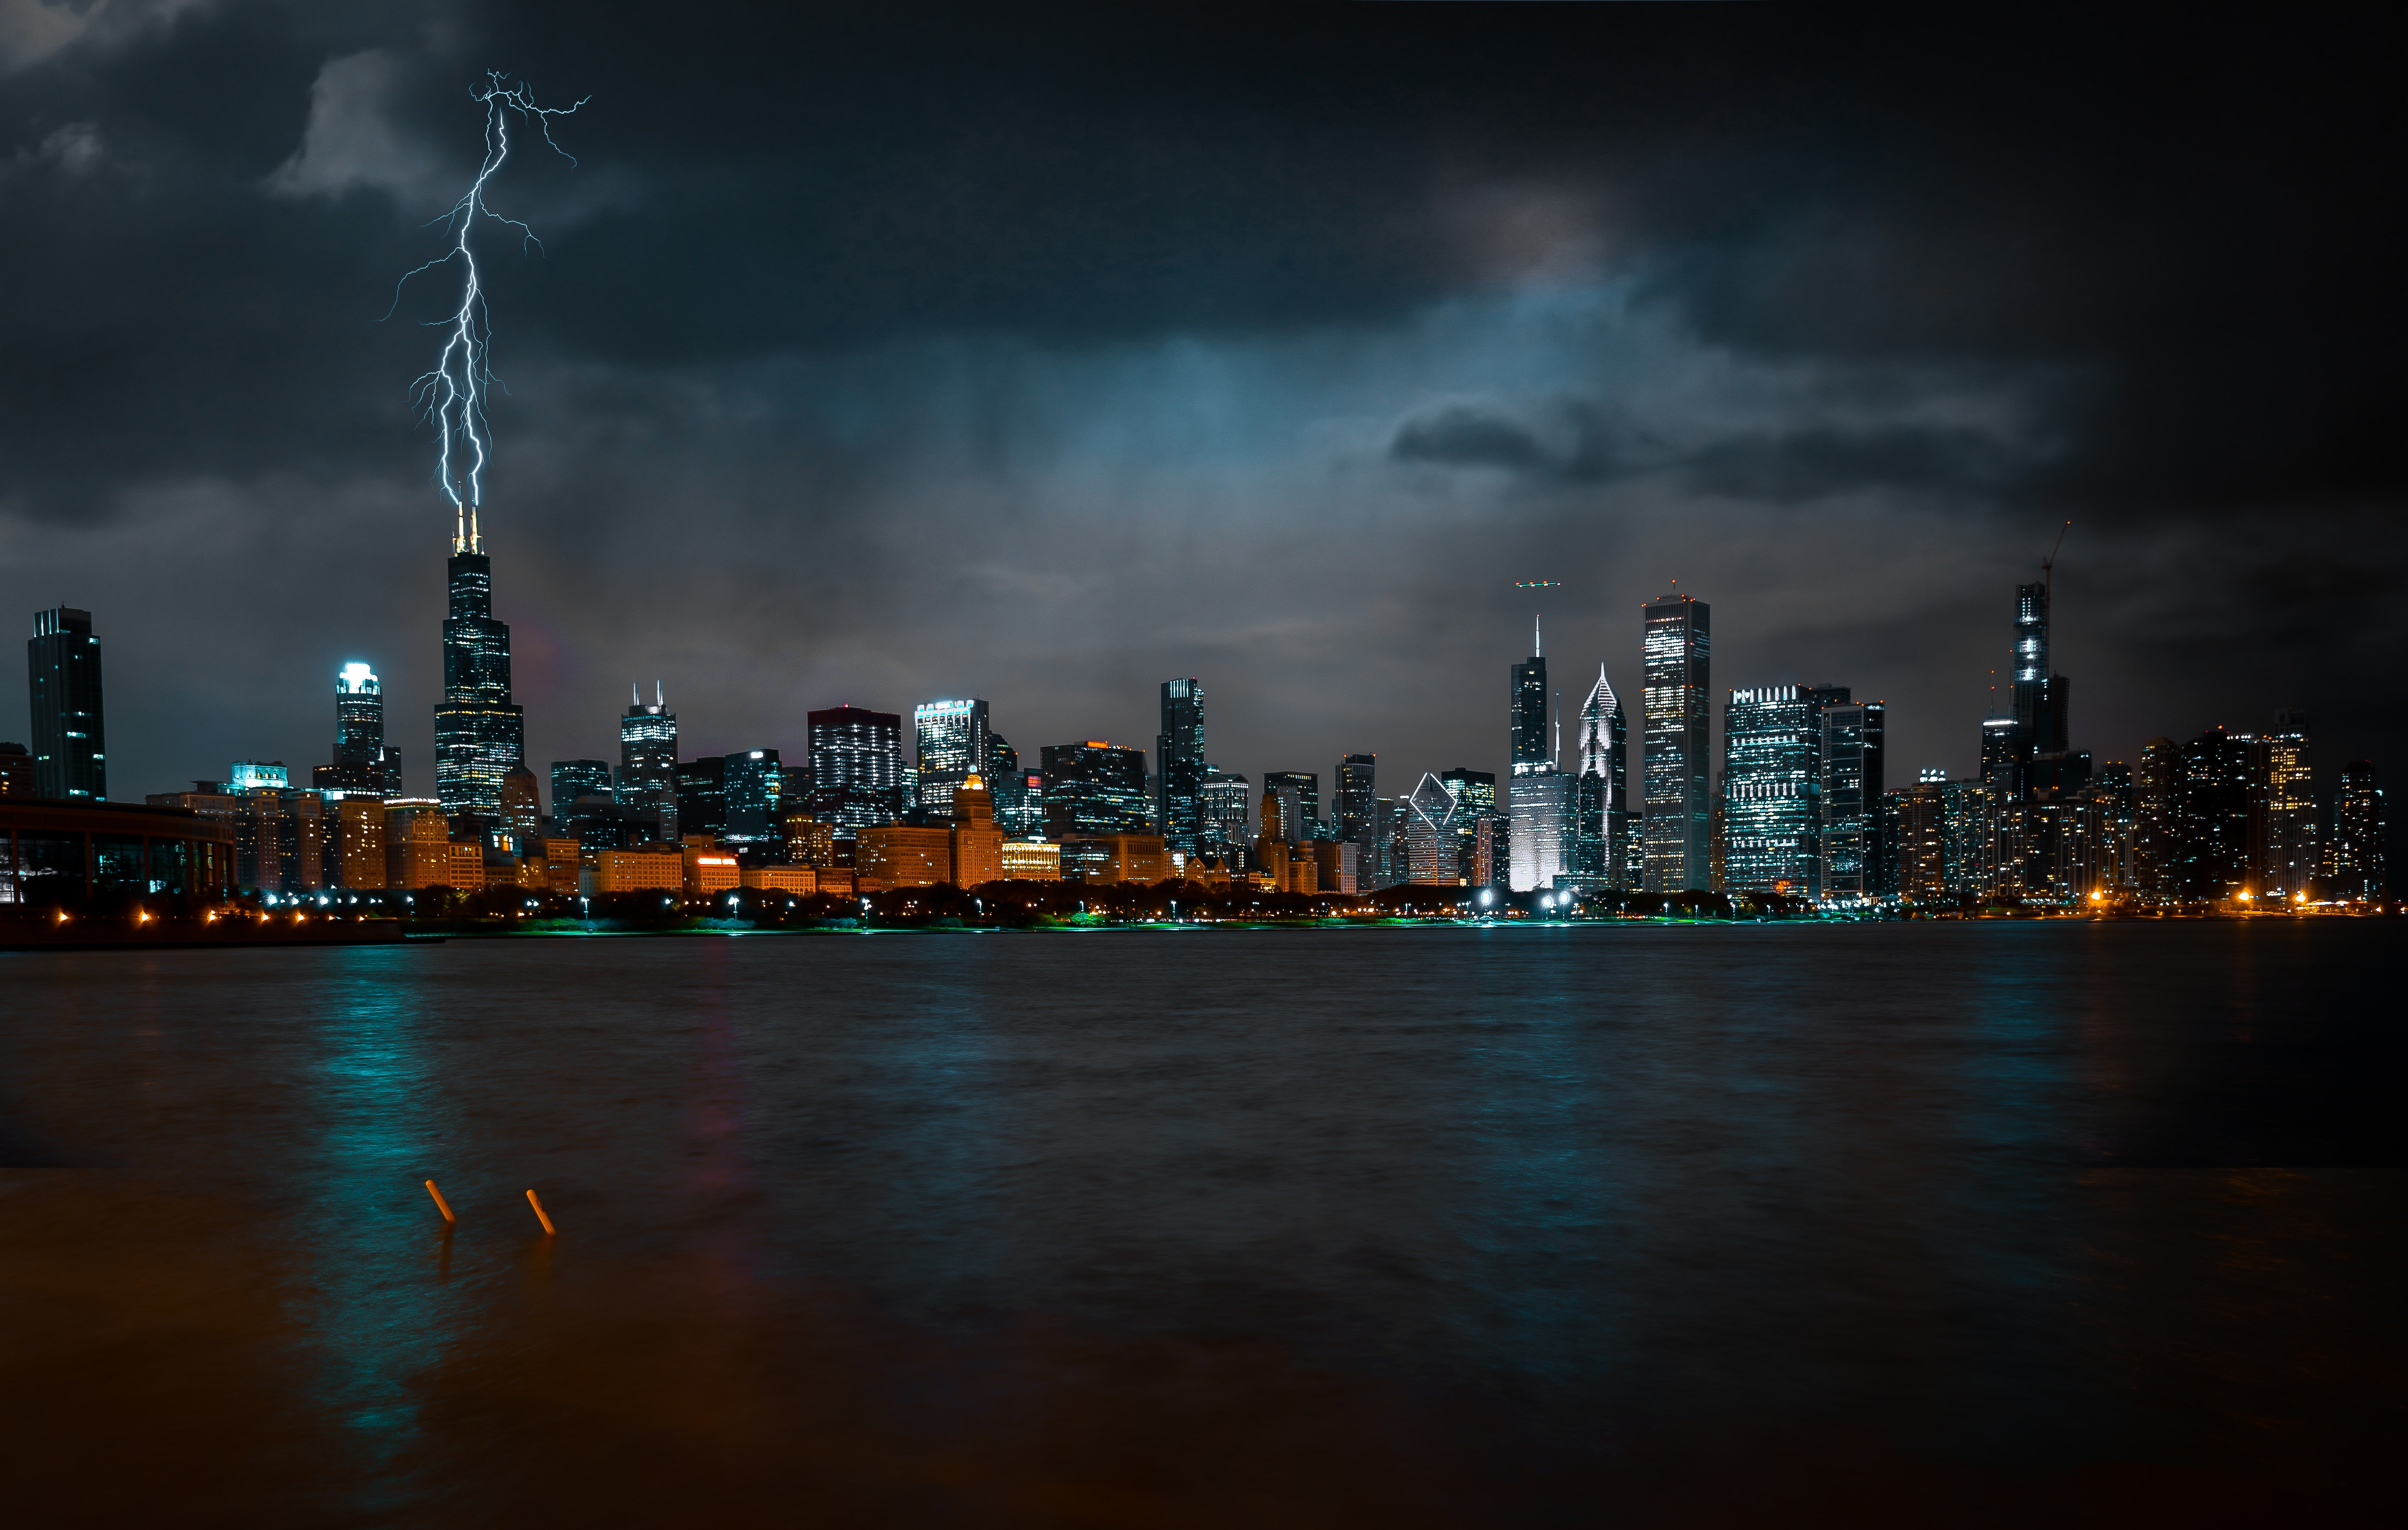 Photo Of Chicago Cityscape At Night While Lightning Strikes High